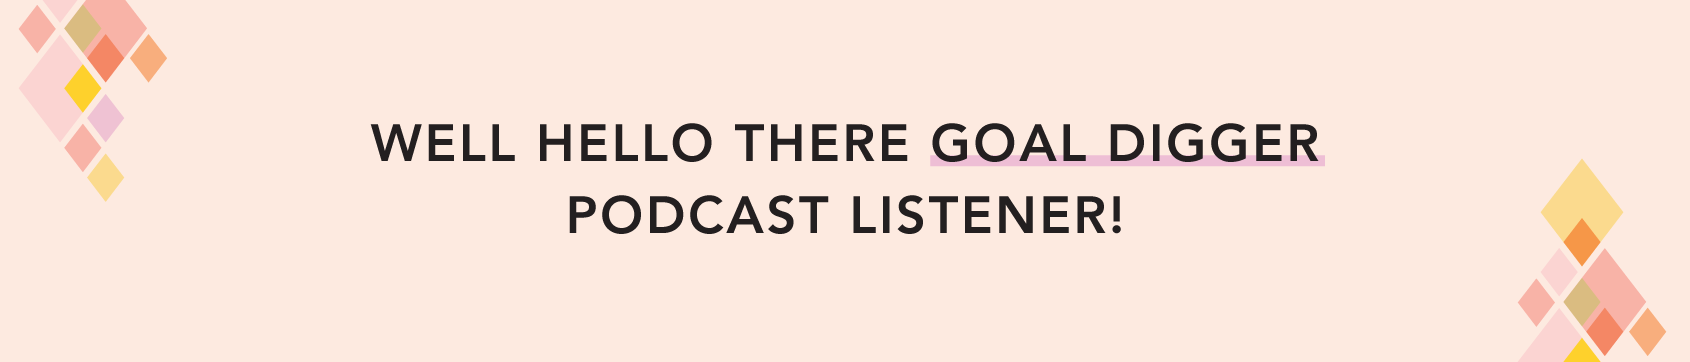 Hello Goal Digger Podcast Listeners